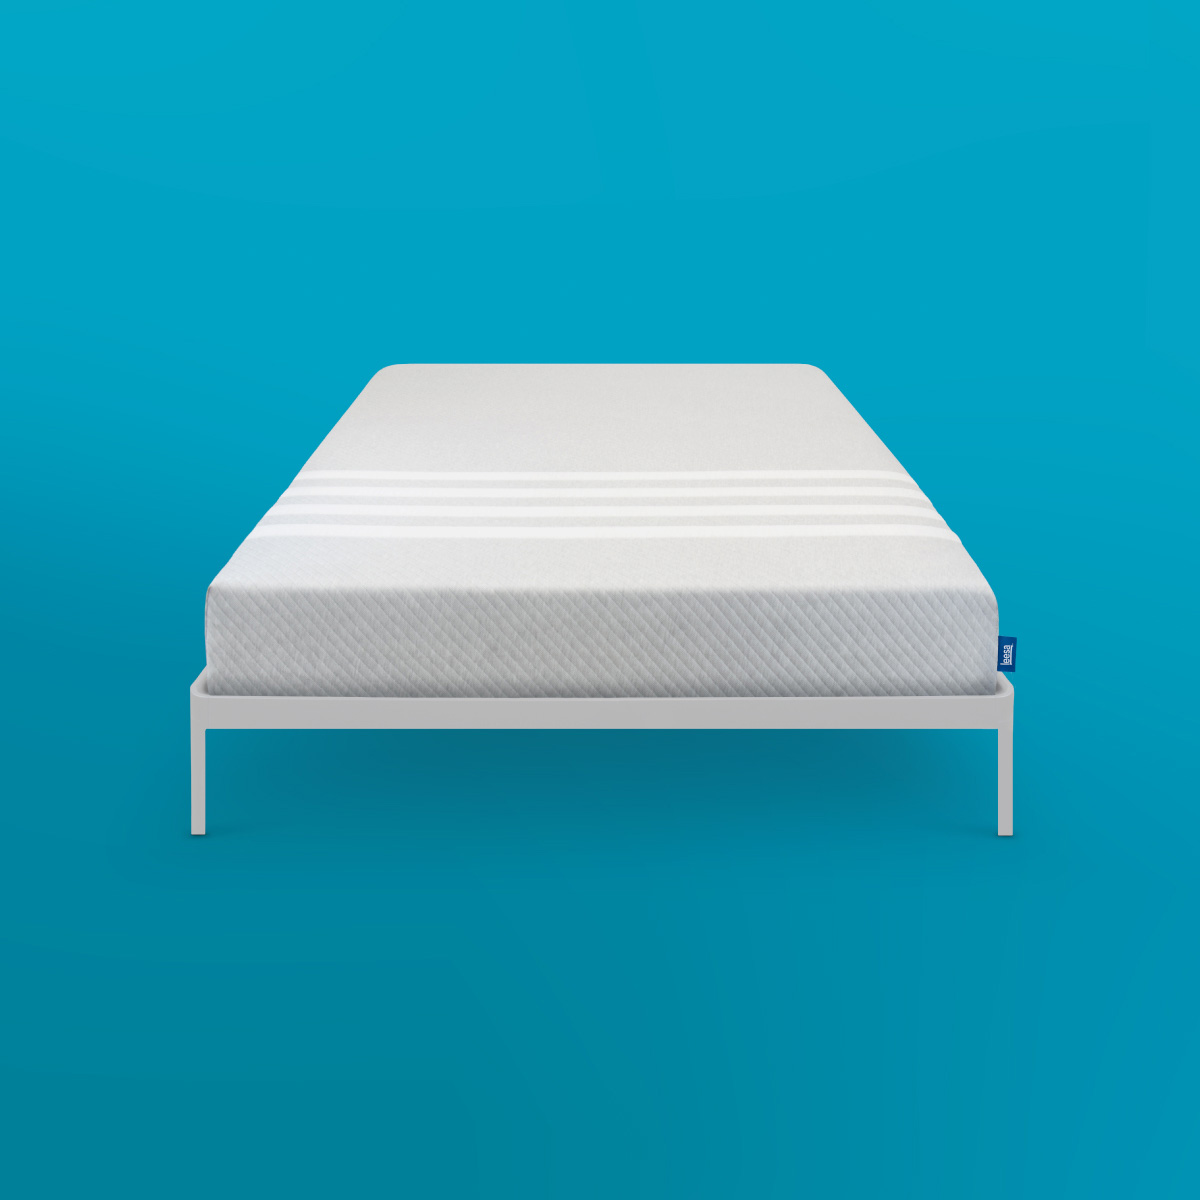 Mattress Sizes | Mattress Size Guide